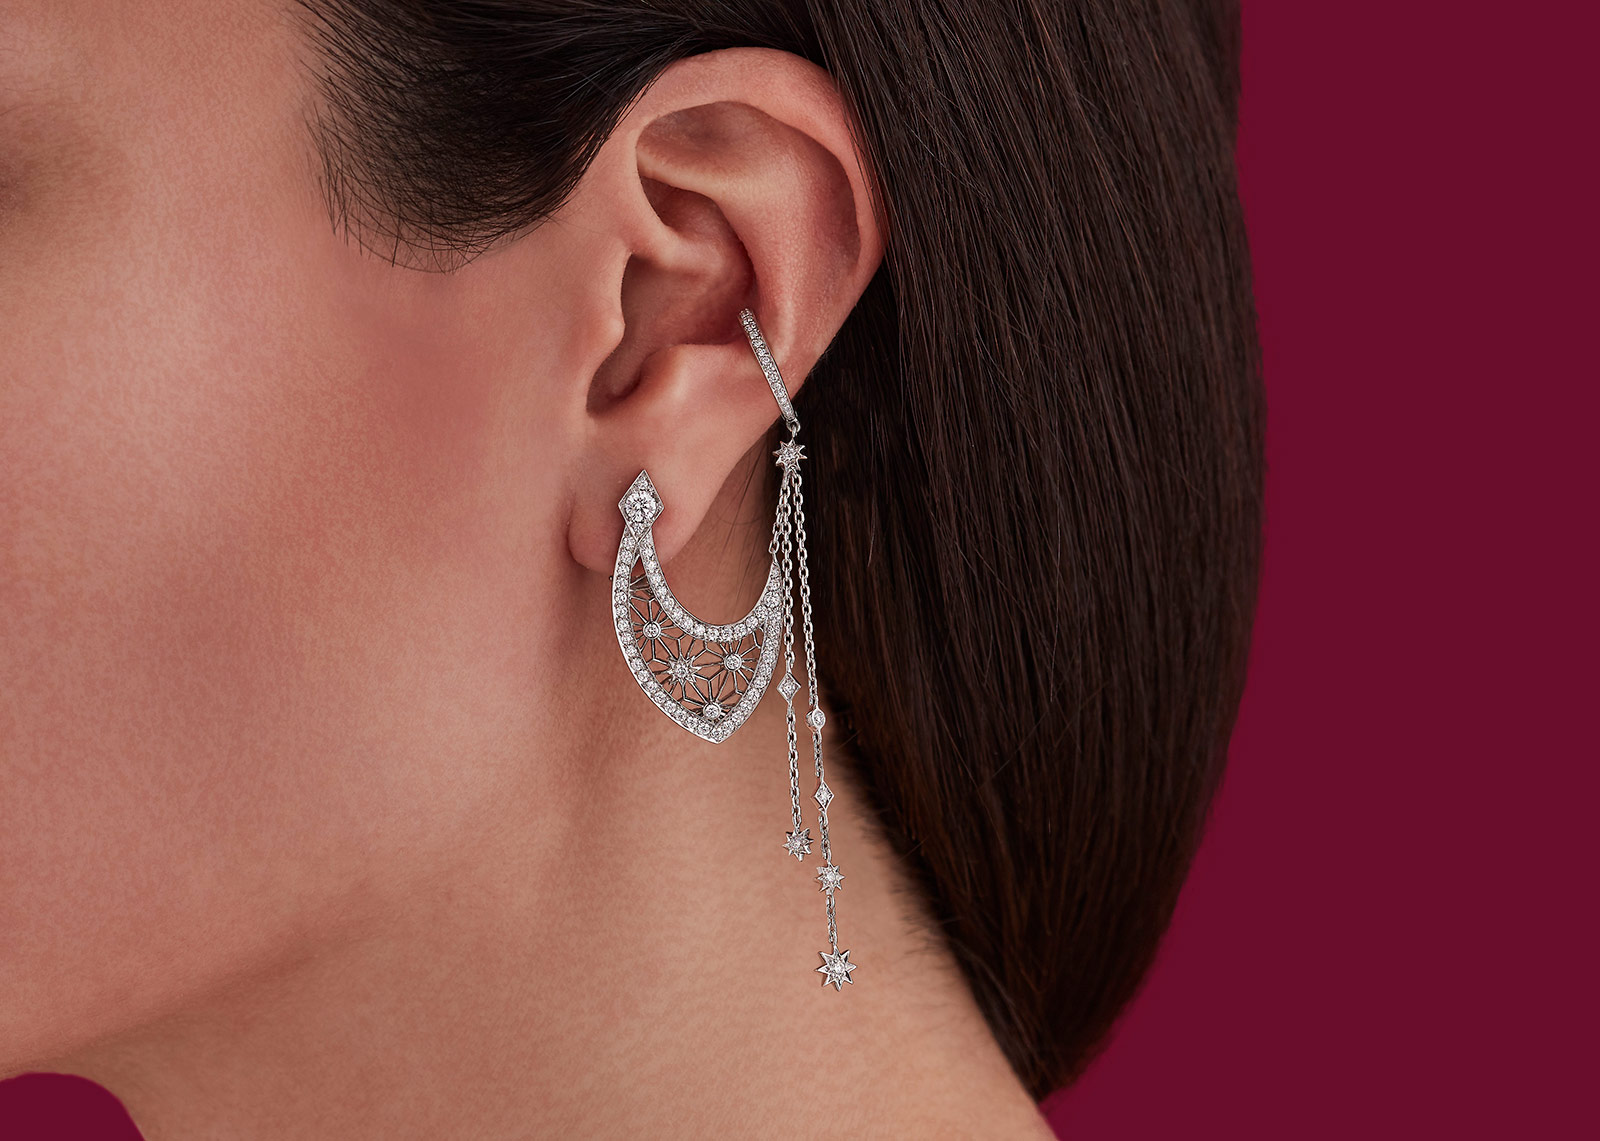 Garrard Filigree Chain hoop earrings with diamonds from Muse collection